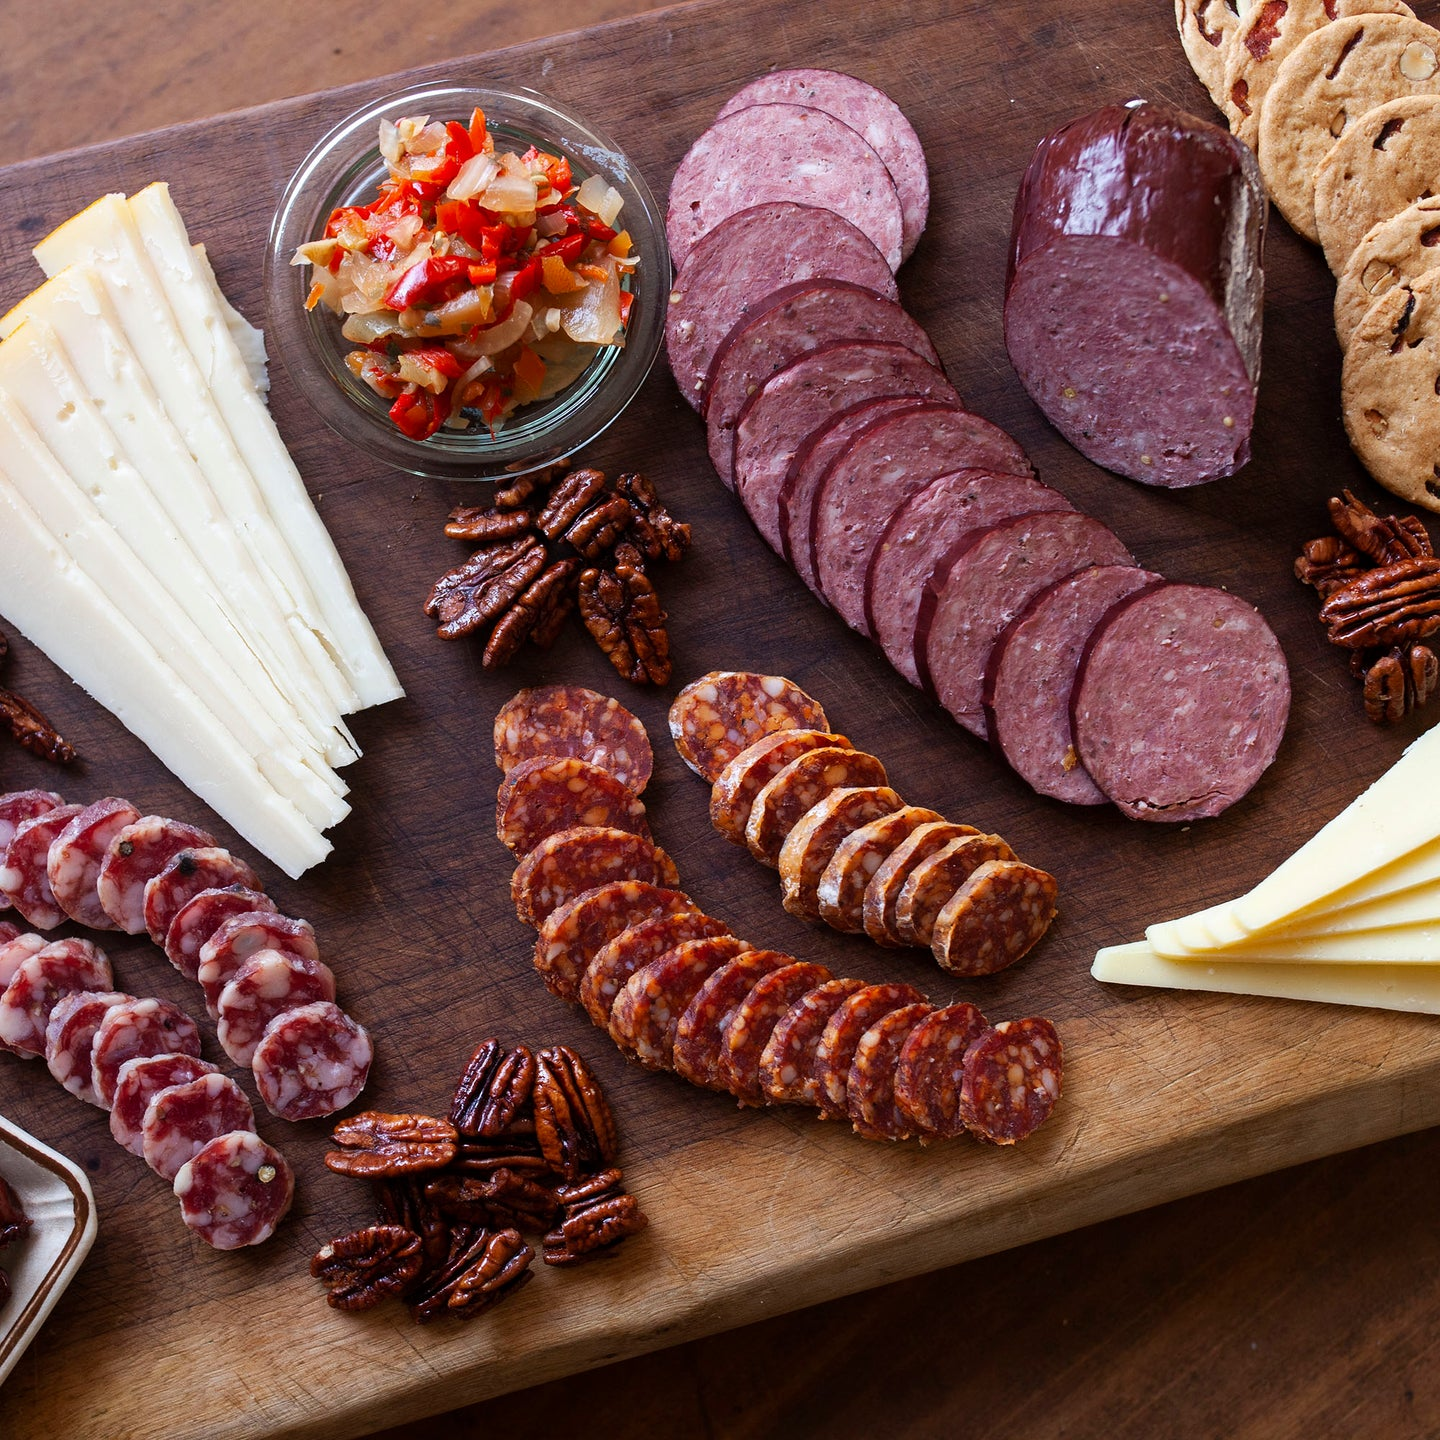 QUALITY CHARCUTERIE